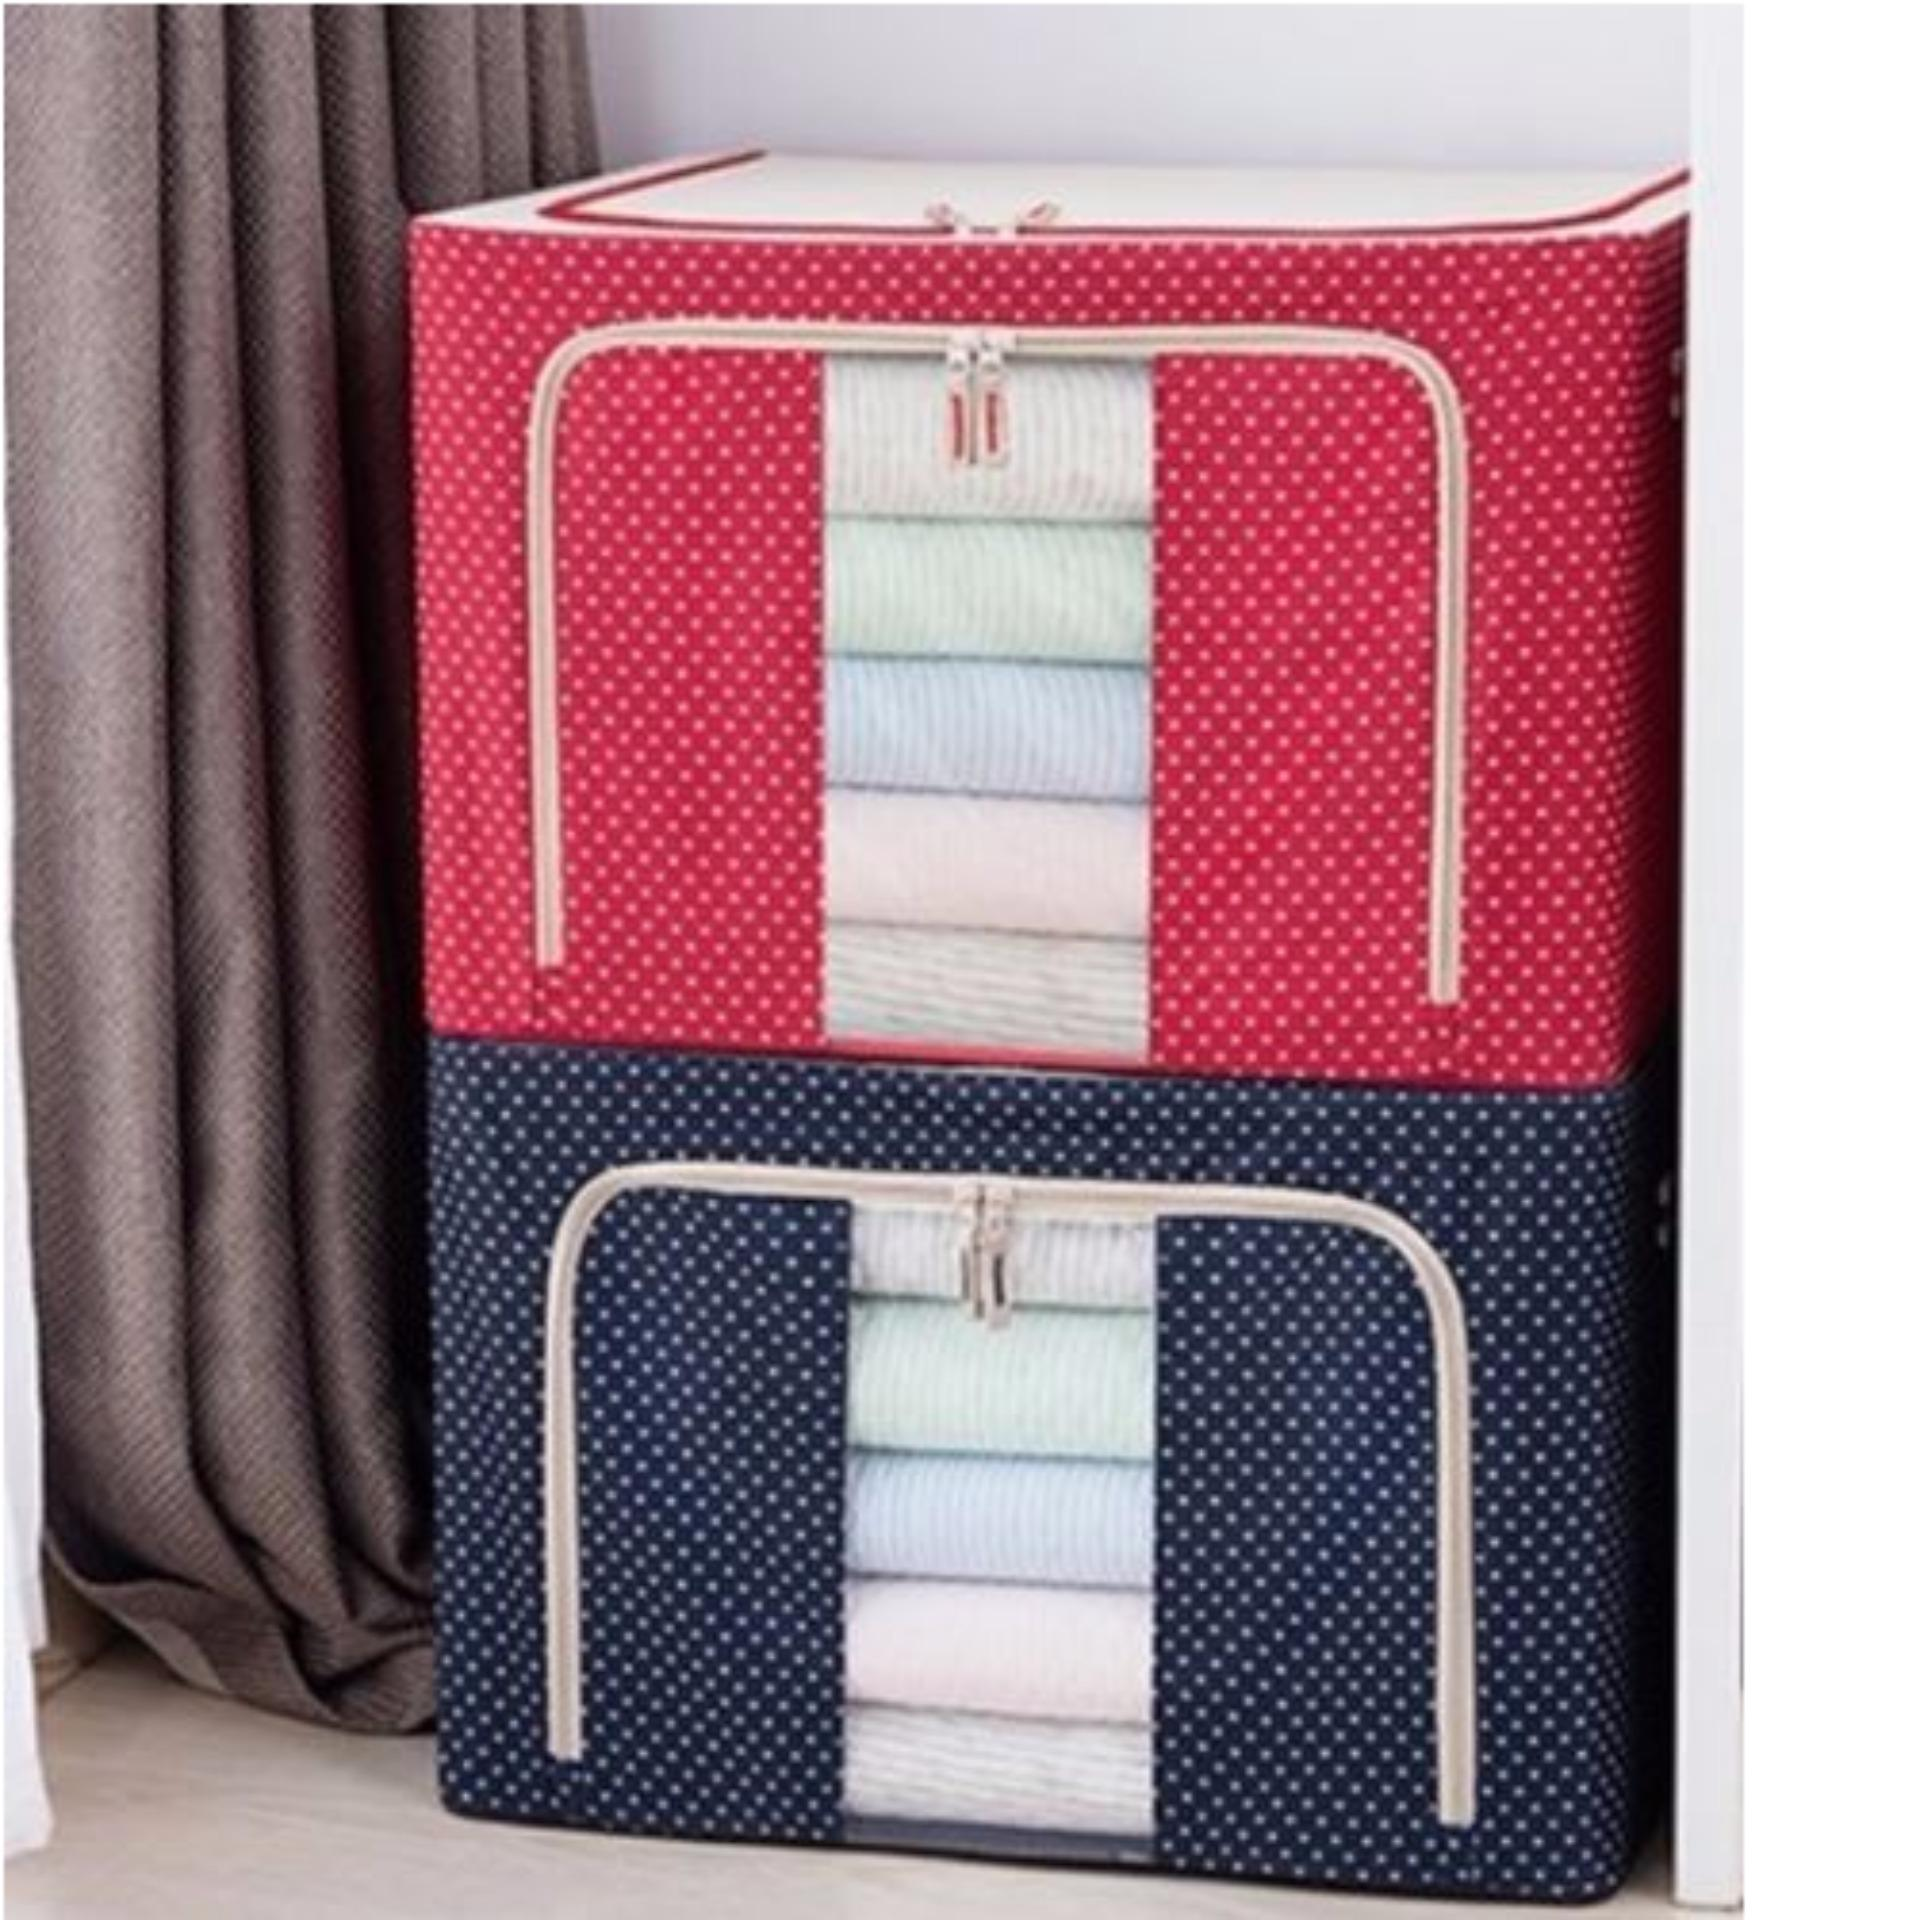 Storage Box with Zip Steel Frame Transparent Window 66L (Polka Dot ...